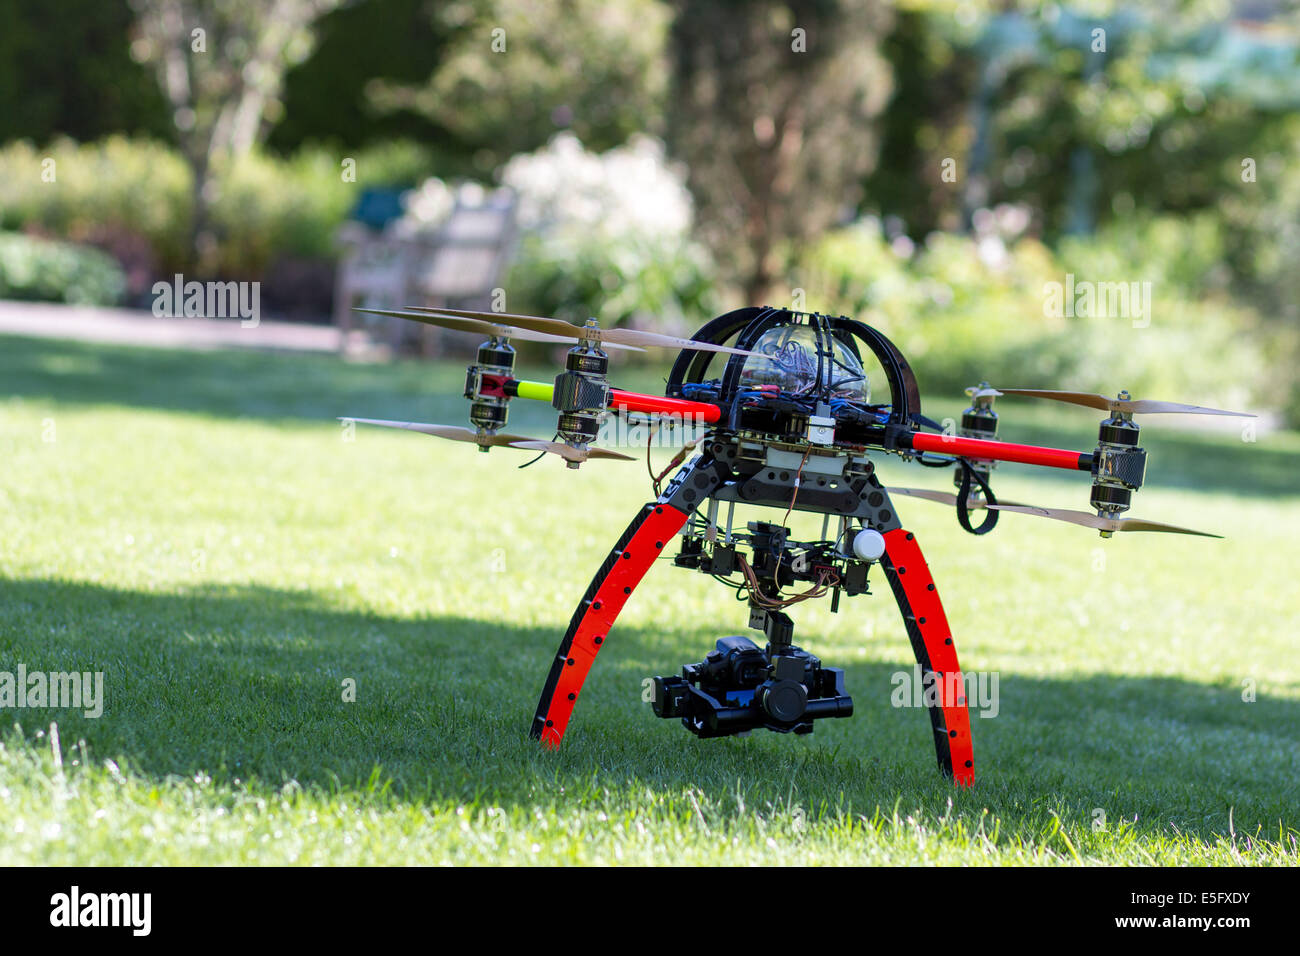 A drone or Unmanned Aircraft waiting for takeoff - Stock Image